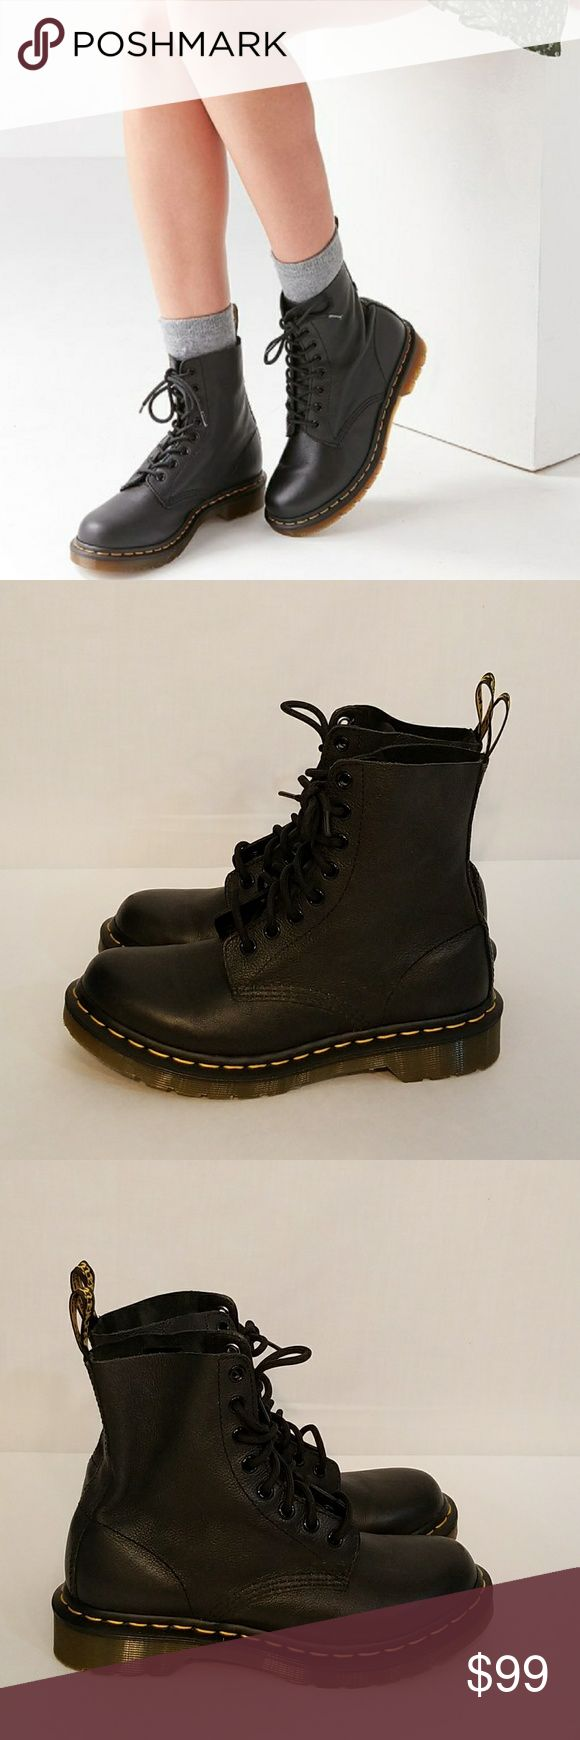 I just added this listing on Poshmark: Dr. Martens 8 Eye Pascal Combat Boots. #shopmycloset #poshmark #fashion #shopping #style #forsale #Dr. Martens #Shoes